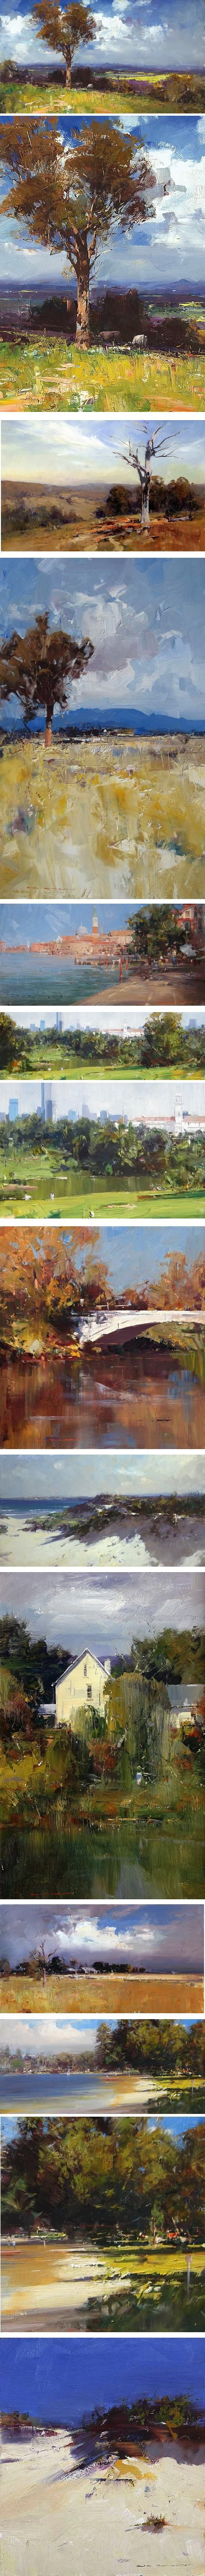 Ken Knight, Australian plein air painter